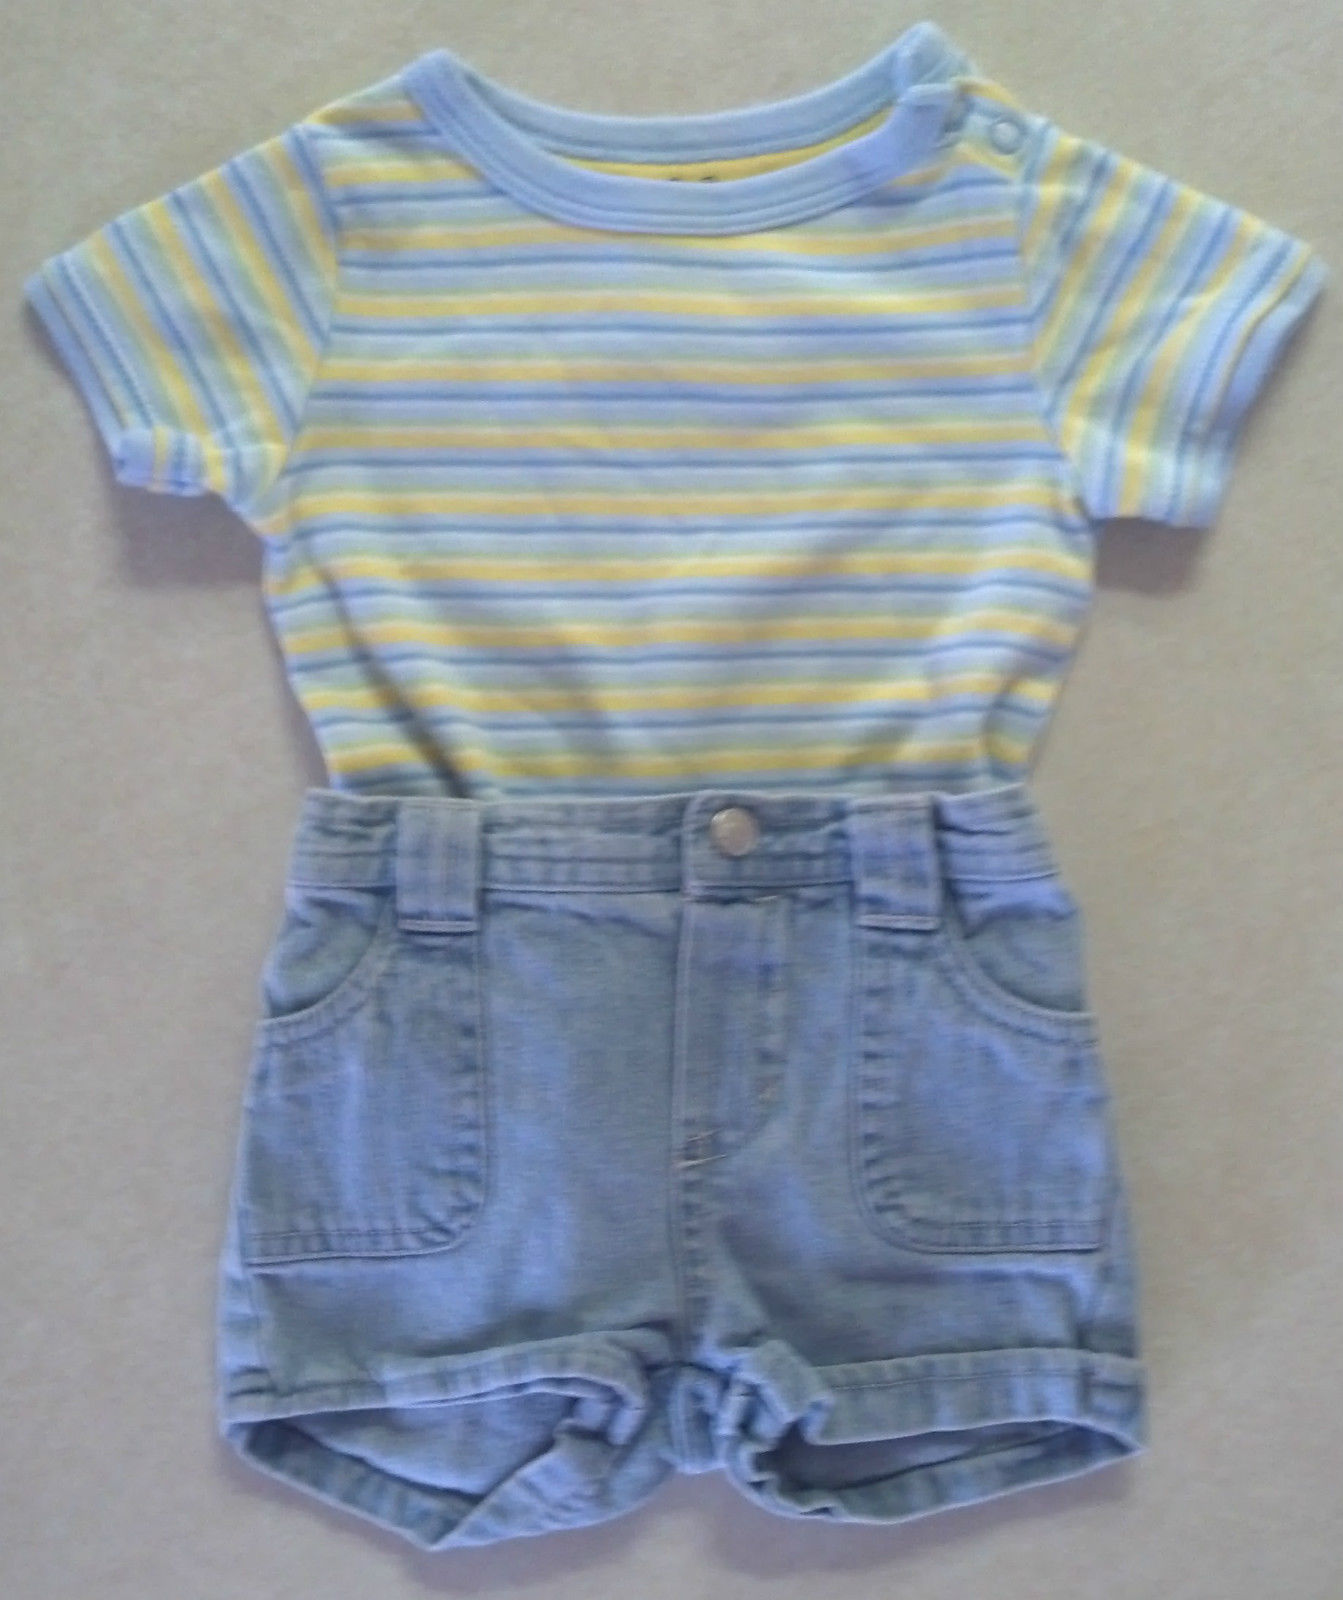 Girl's or Boy's Sz 0-3 M Months Two Piece Outfit Blue Striped Top & Jean Shorts